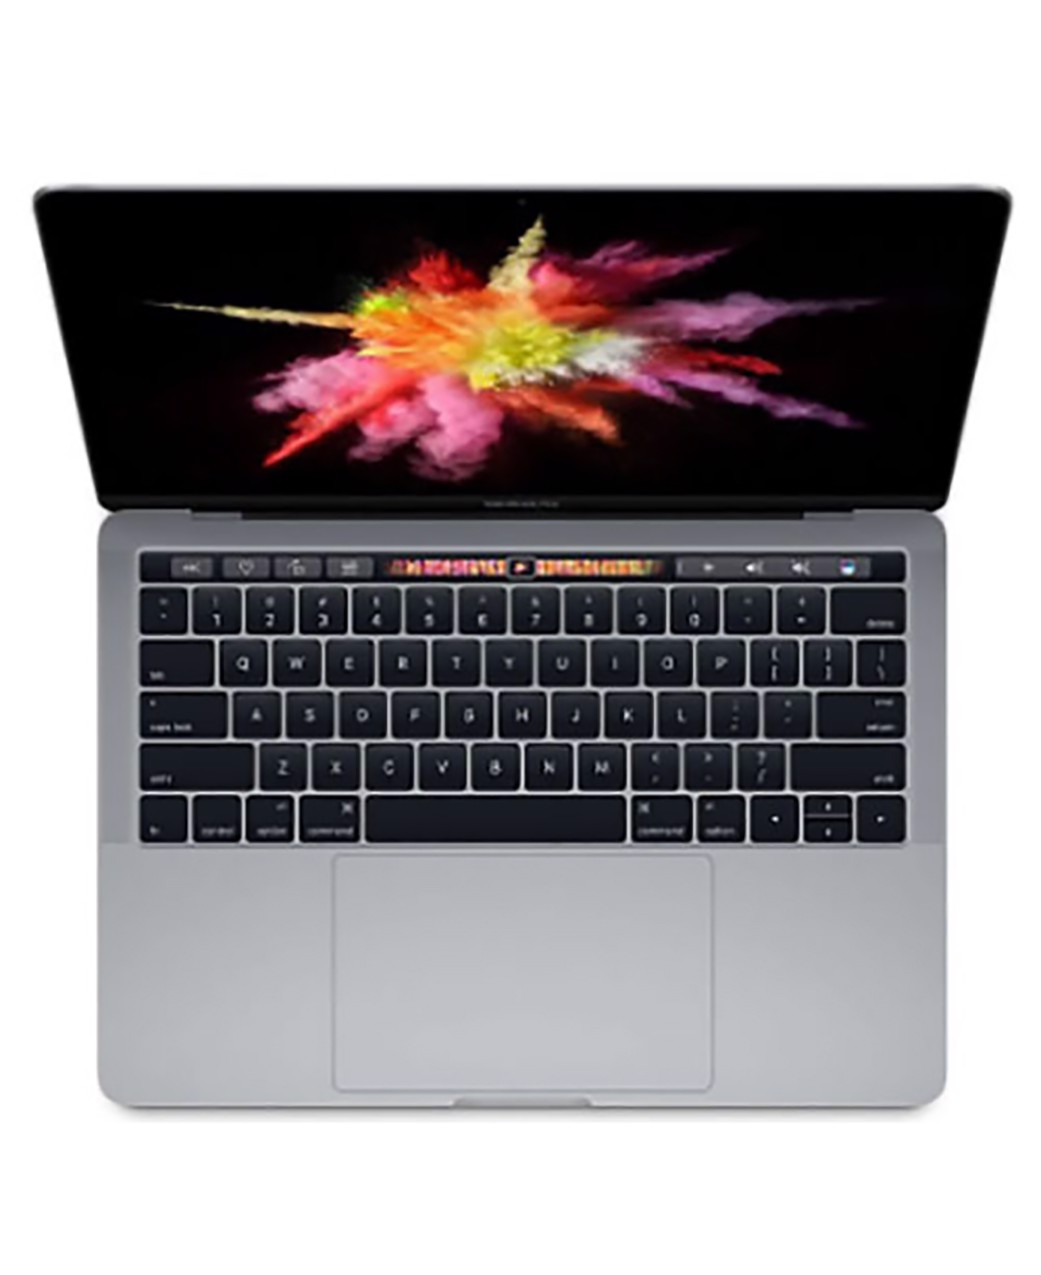 Macbook Pro 13 inch SSD 512GB - TouchBar - 2017